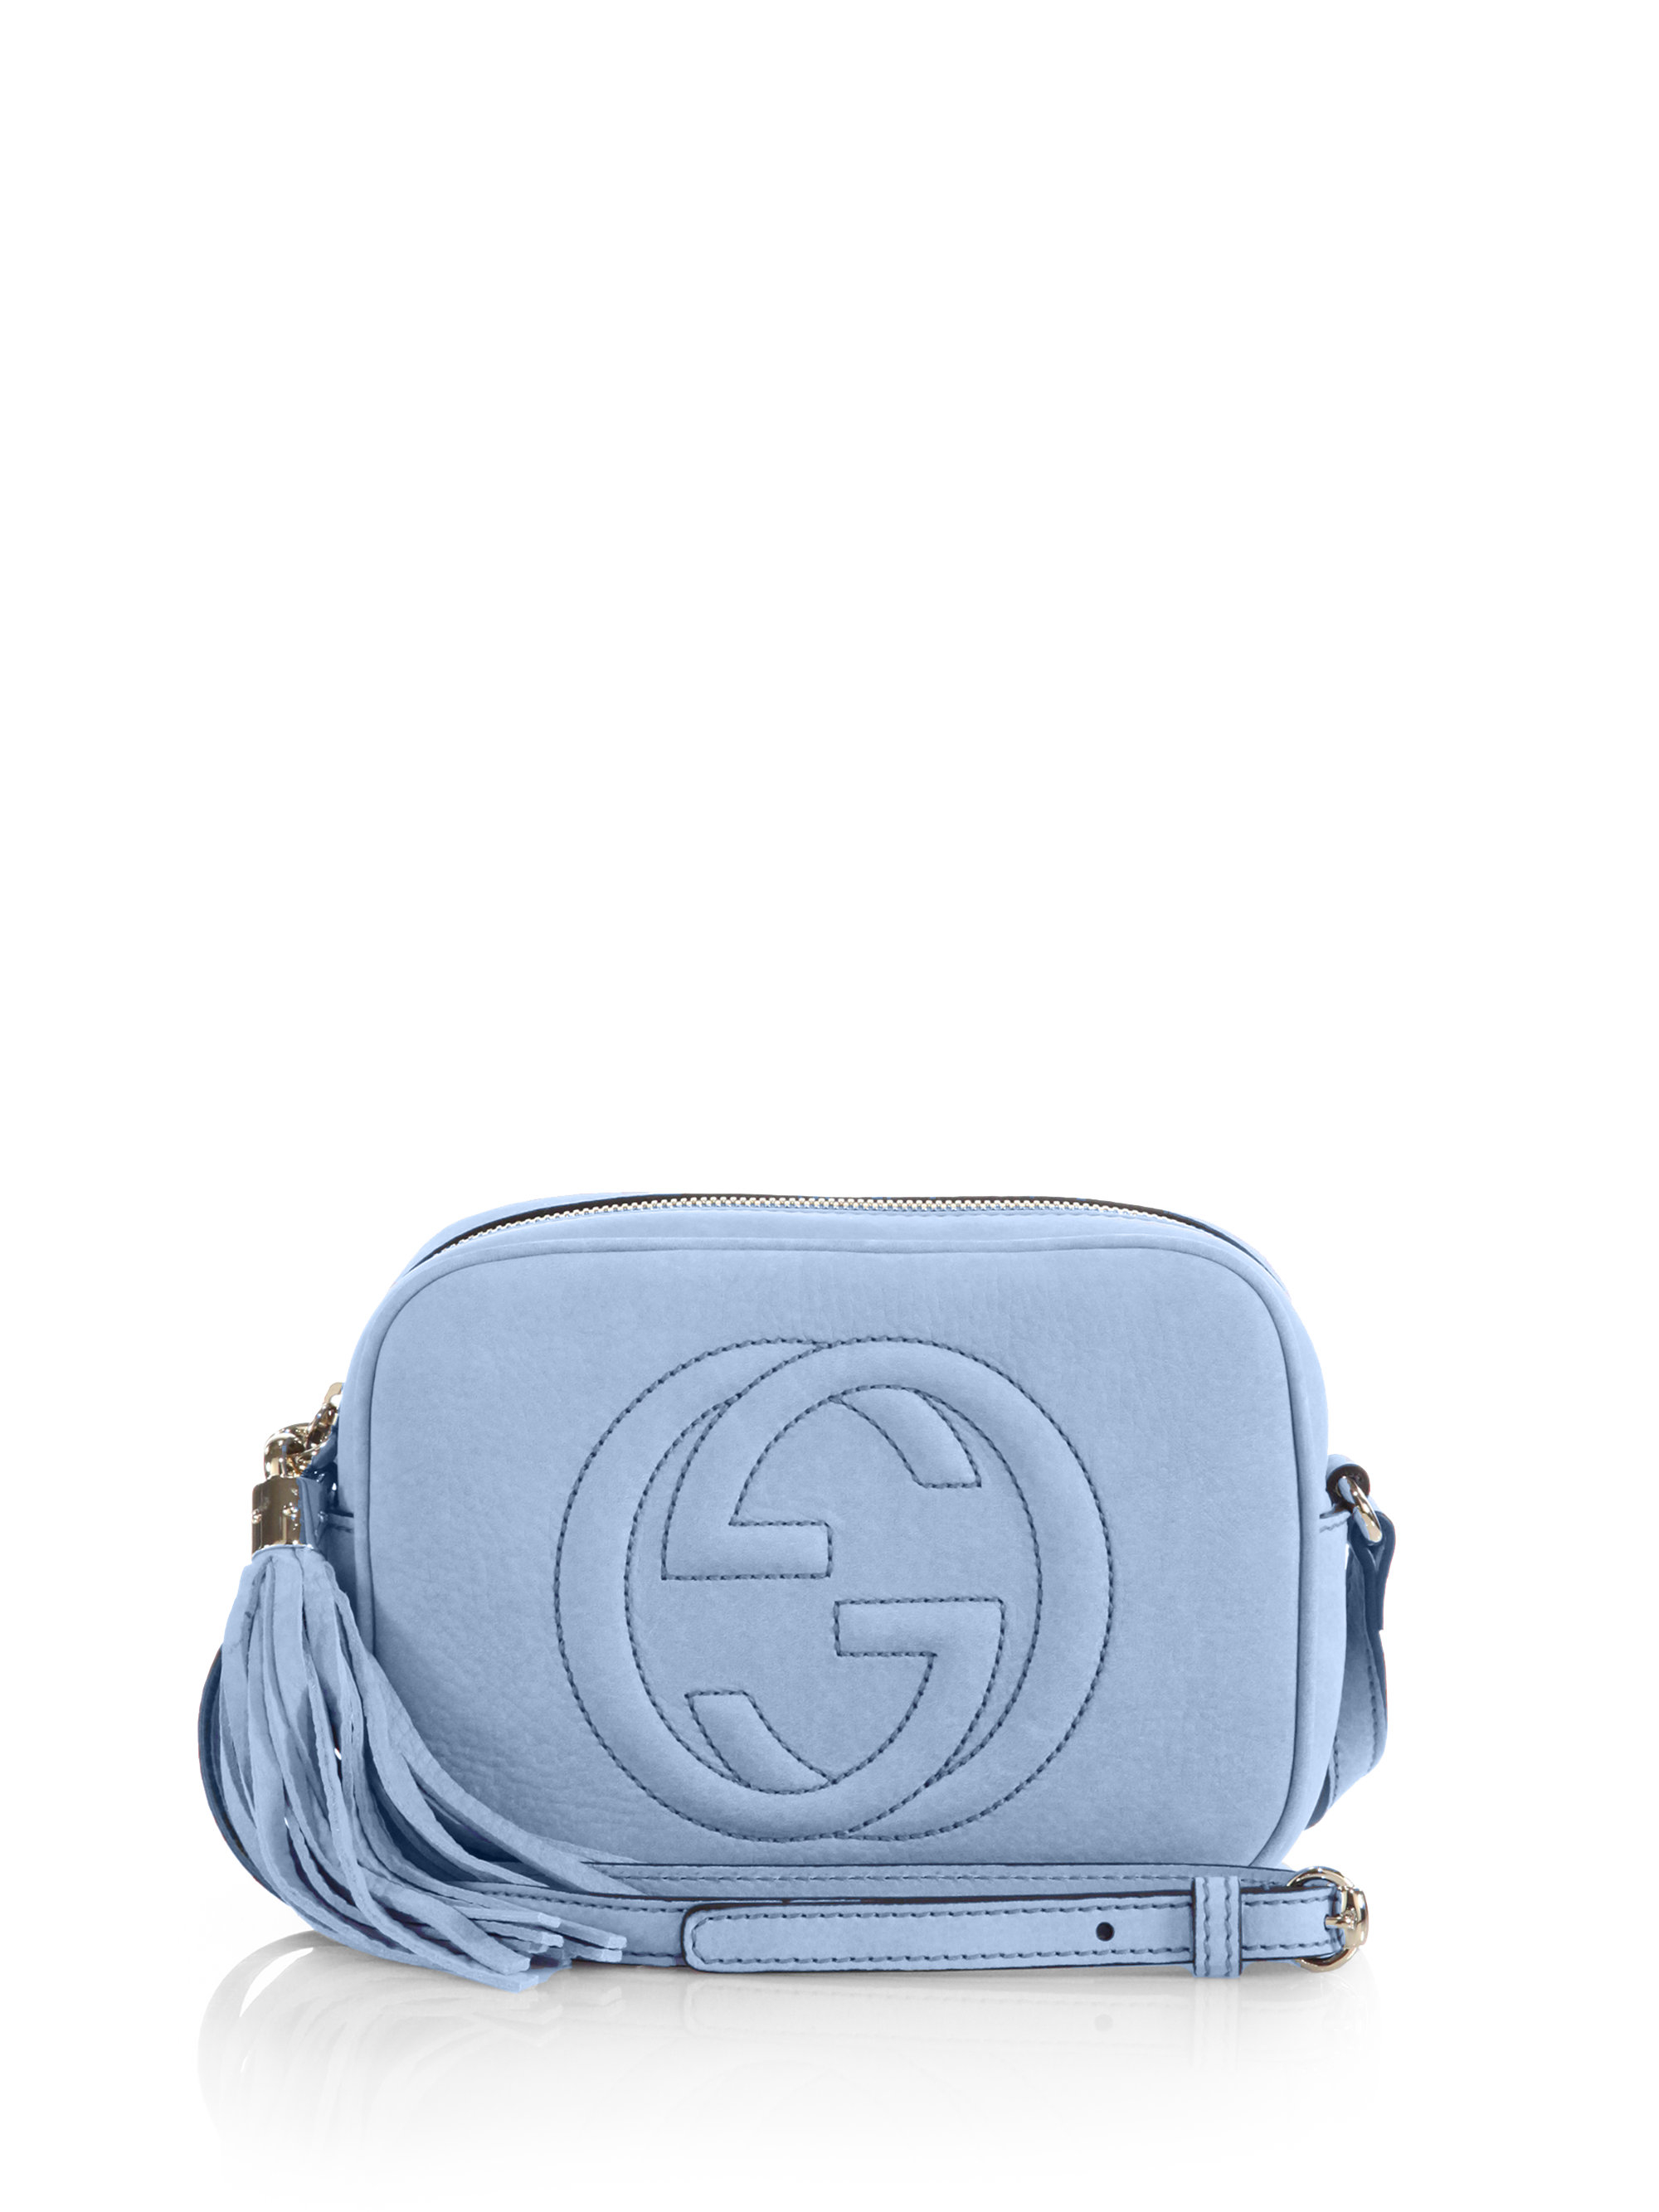 6da3fd569 Gallery. Previously sold at: Saks Fifth Avenue · Women's Gucci Soho Bag